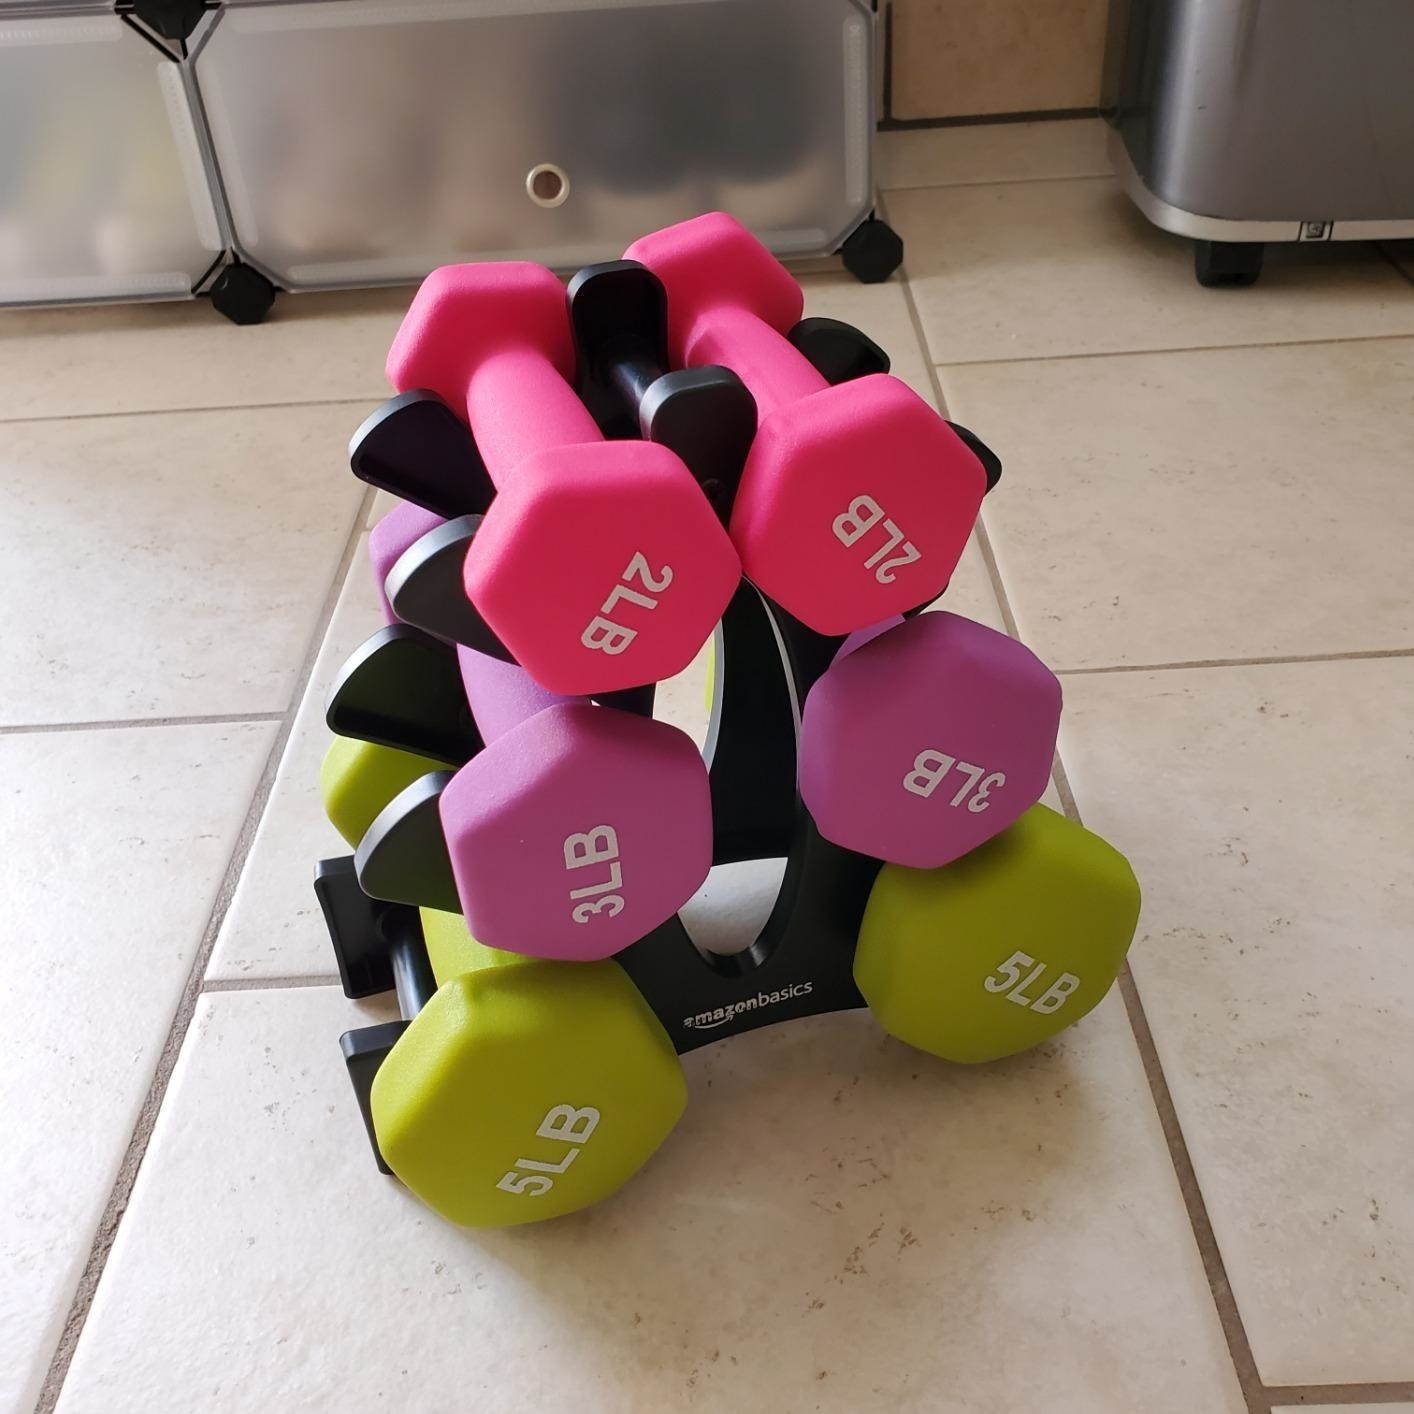 a set of two, three, and five-pound weights sitting on a black stand